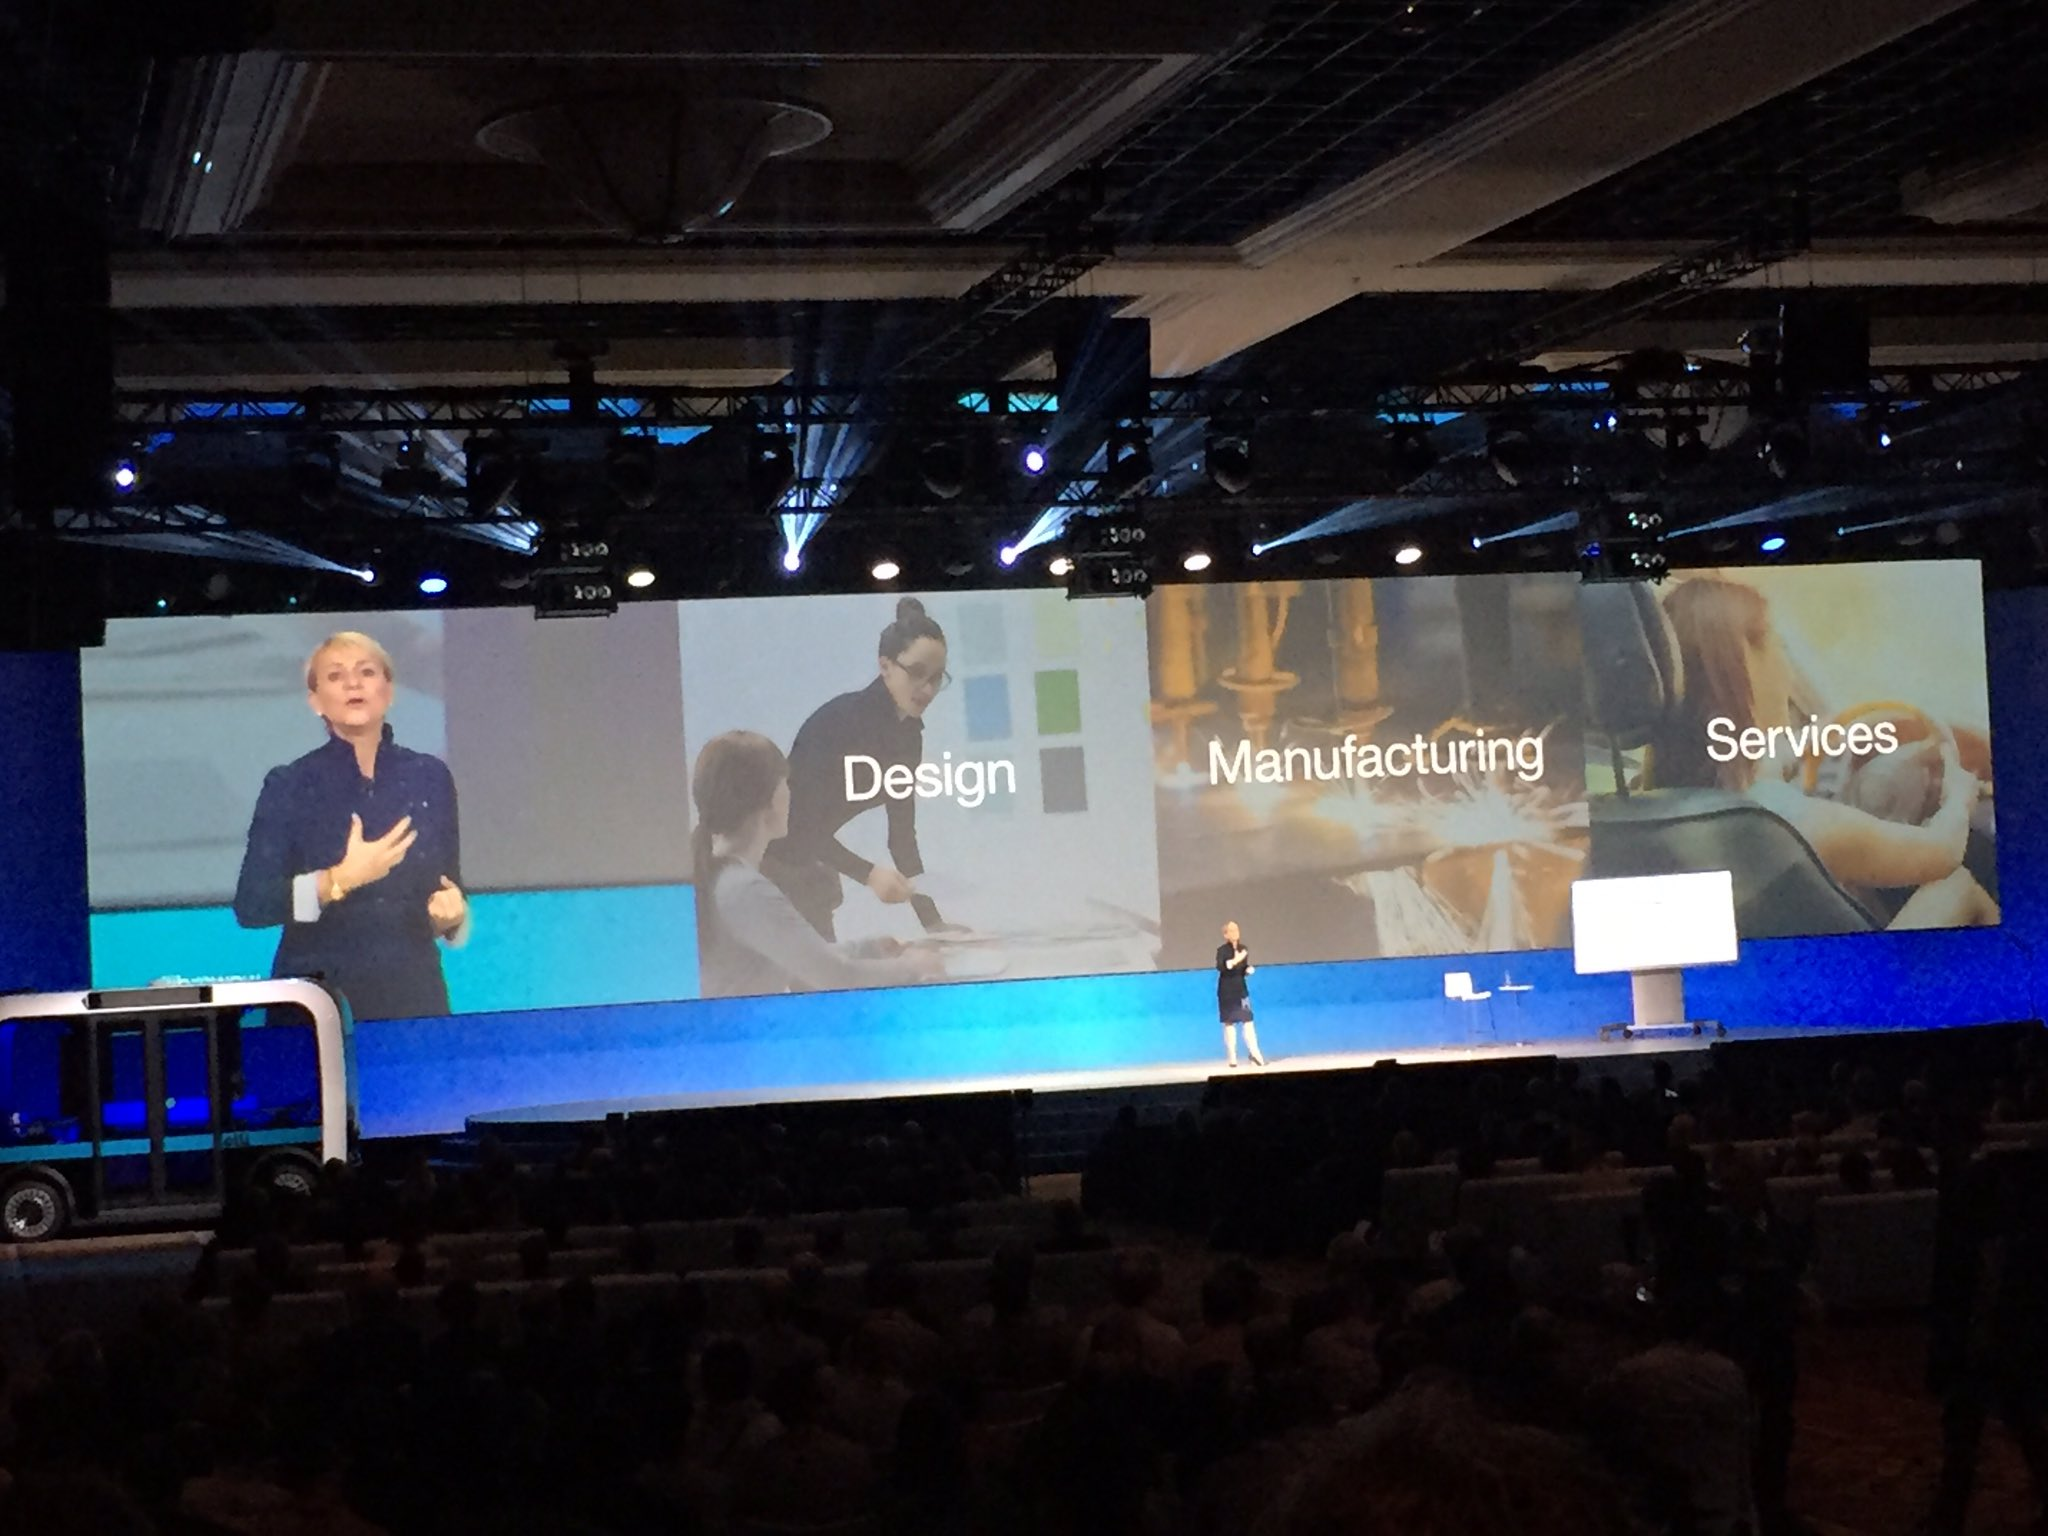 @harrietgreen1 Design, Manufacturing & Services, Reinvented Through Watson. #ibmwow #WatsonIoT #internetofthings https://t.co/2ozAUquvCQ